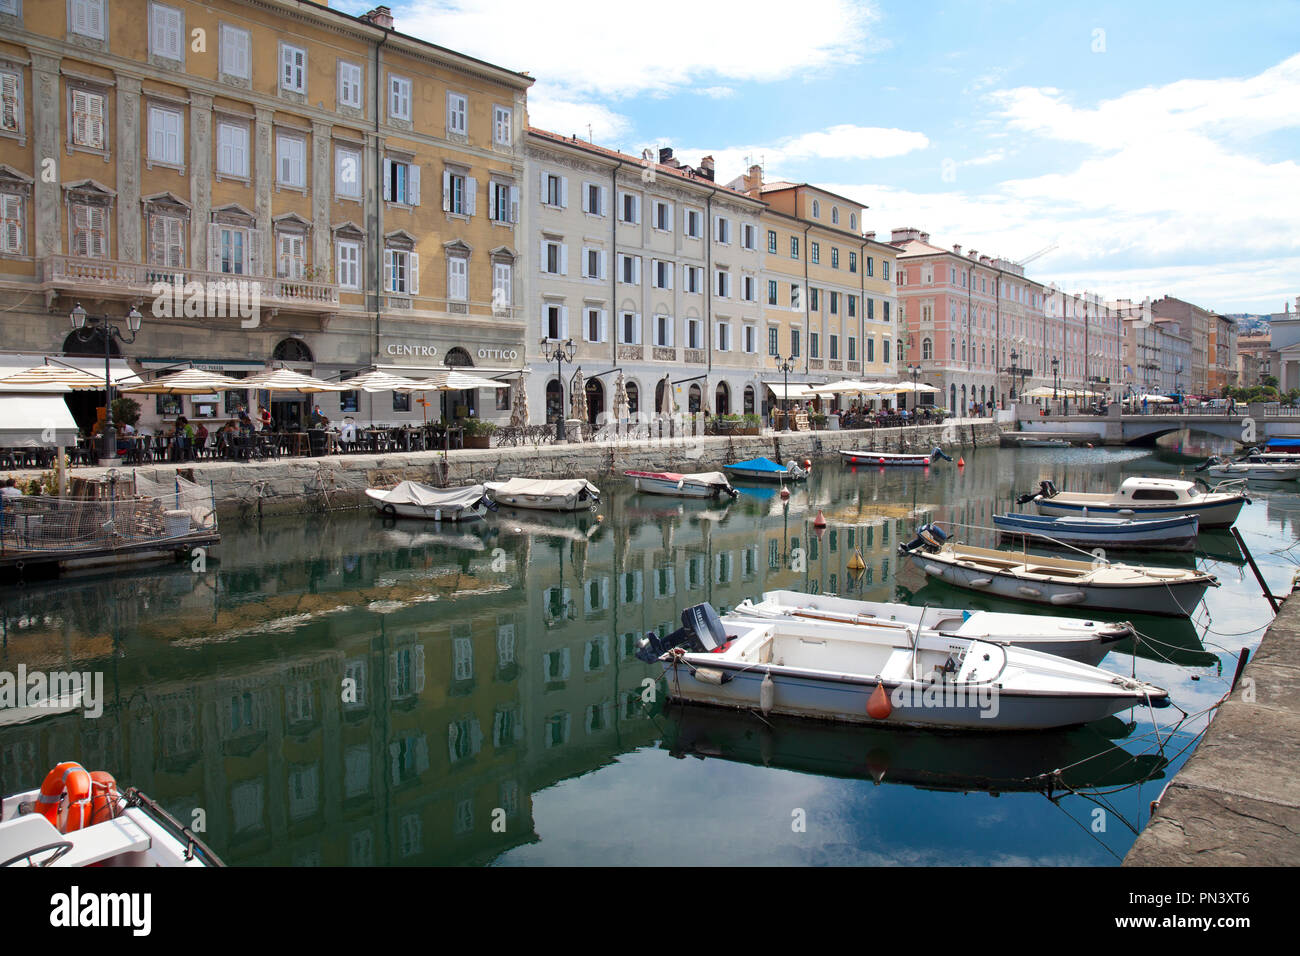 Canal Grande, Trieste, Italy.  Built while Trieste was under the protection and control of the Hapsburgs (Austria), the Grand Canal today is lined wit - Stock Image